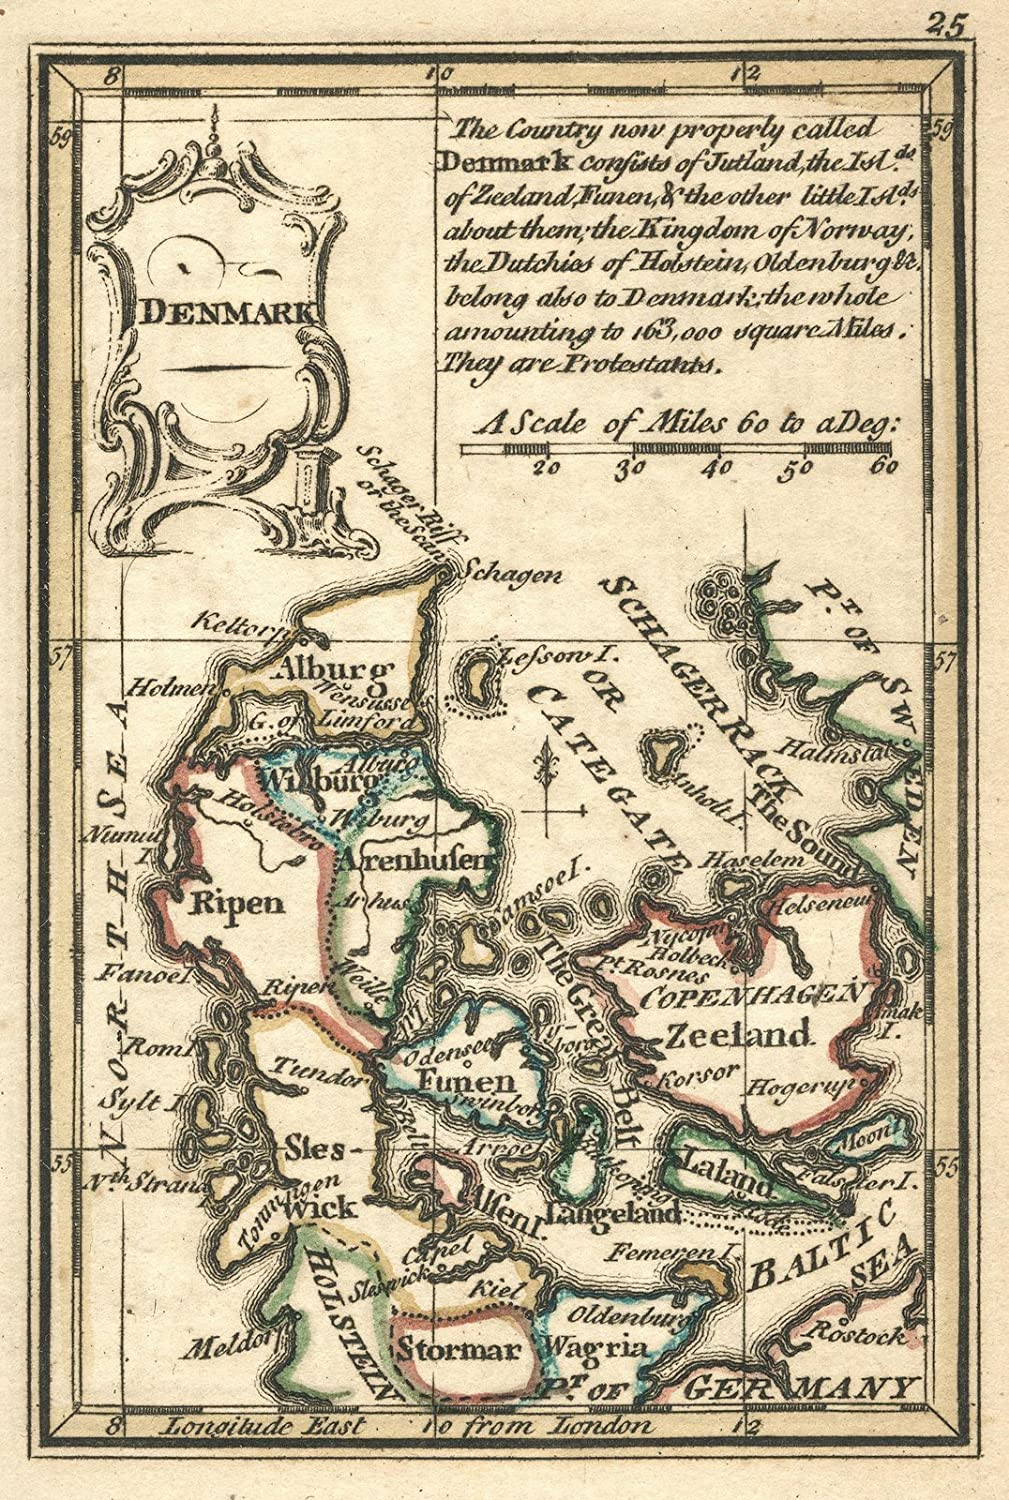 Amazon.com: 1758 World Atlas | Denmark. (to accompany) Atlas Minimus ...